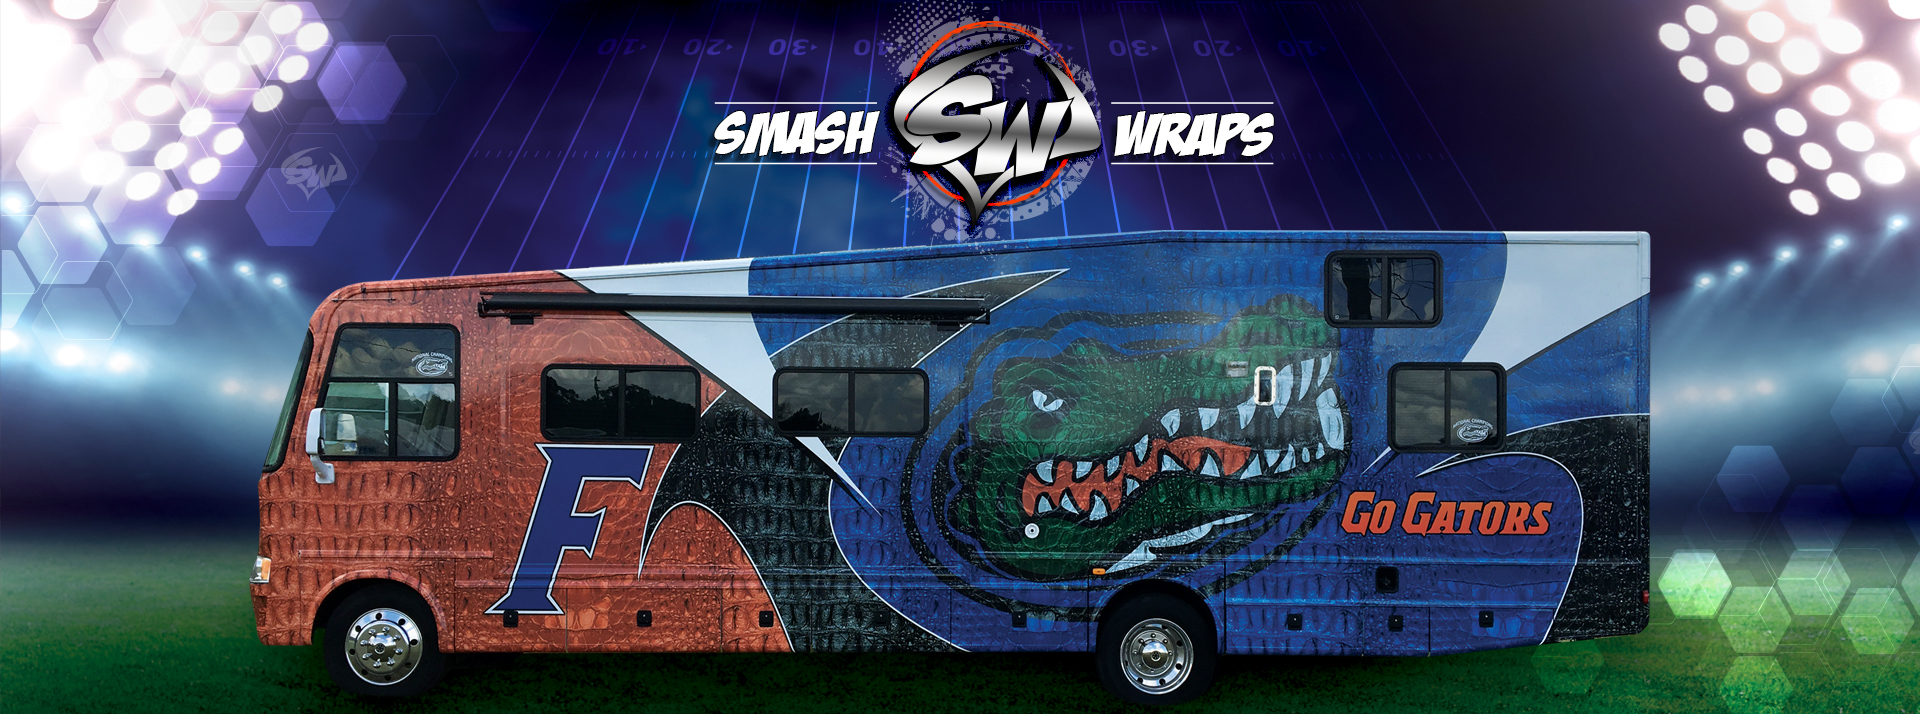 Vehicle wrapping is one of the fastest growing mediums in